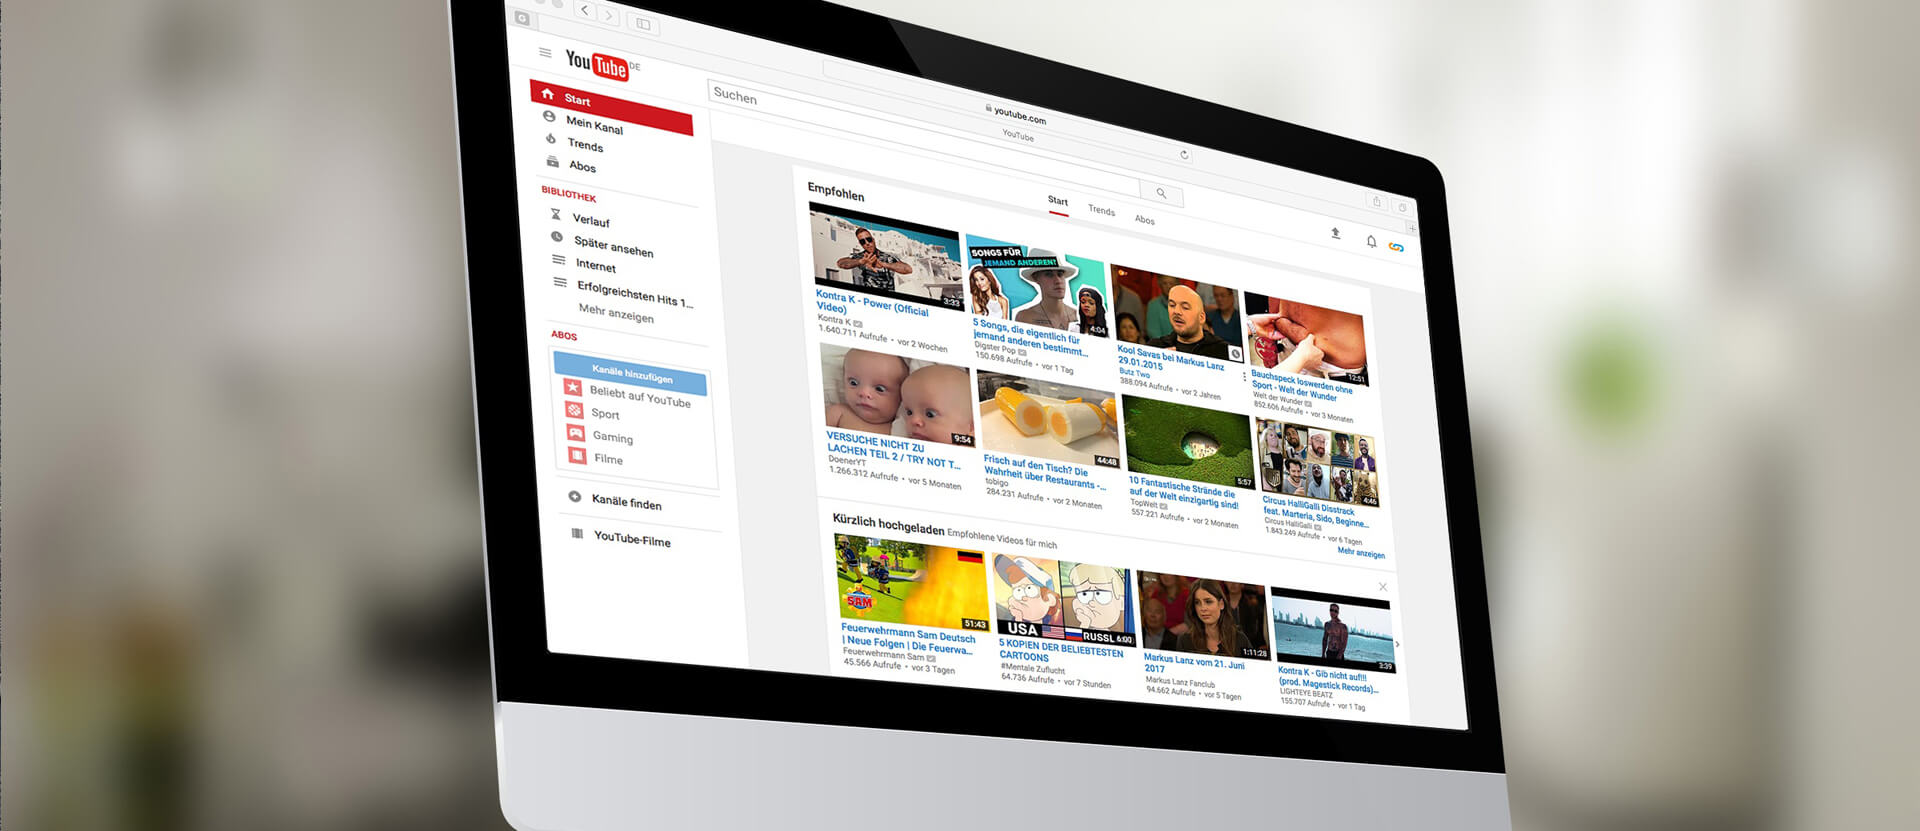 308 How to Create YouTube Videos Quickly